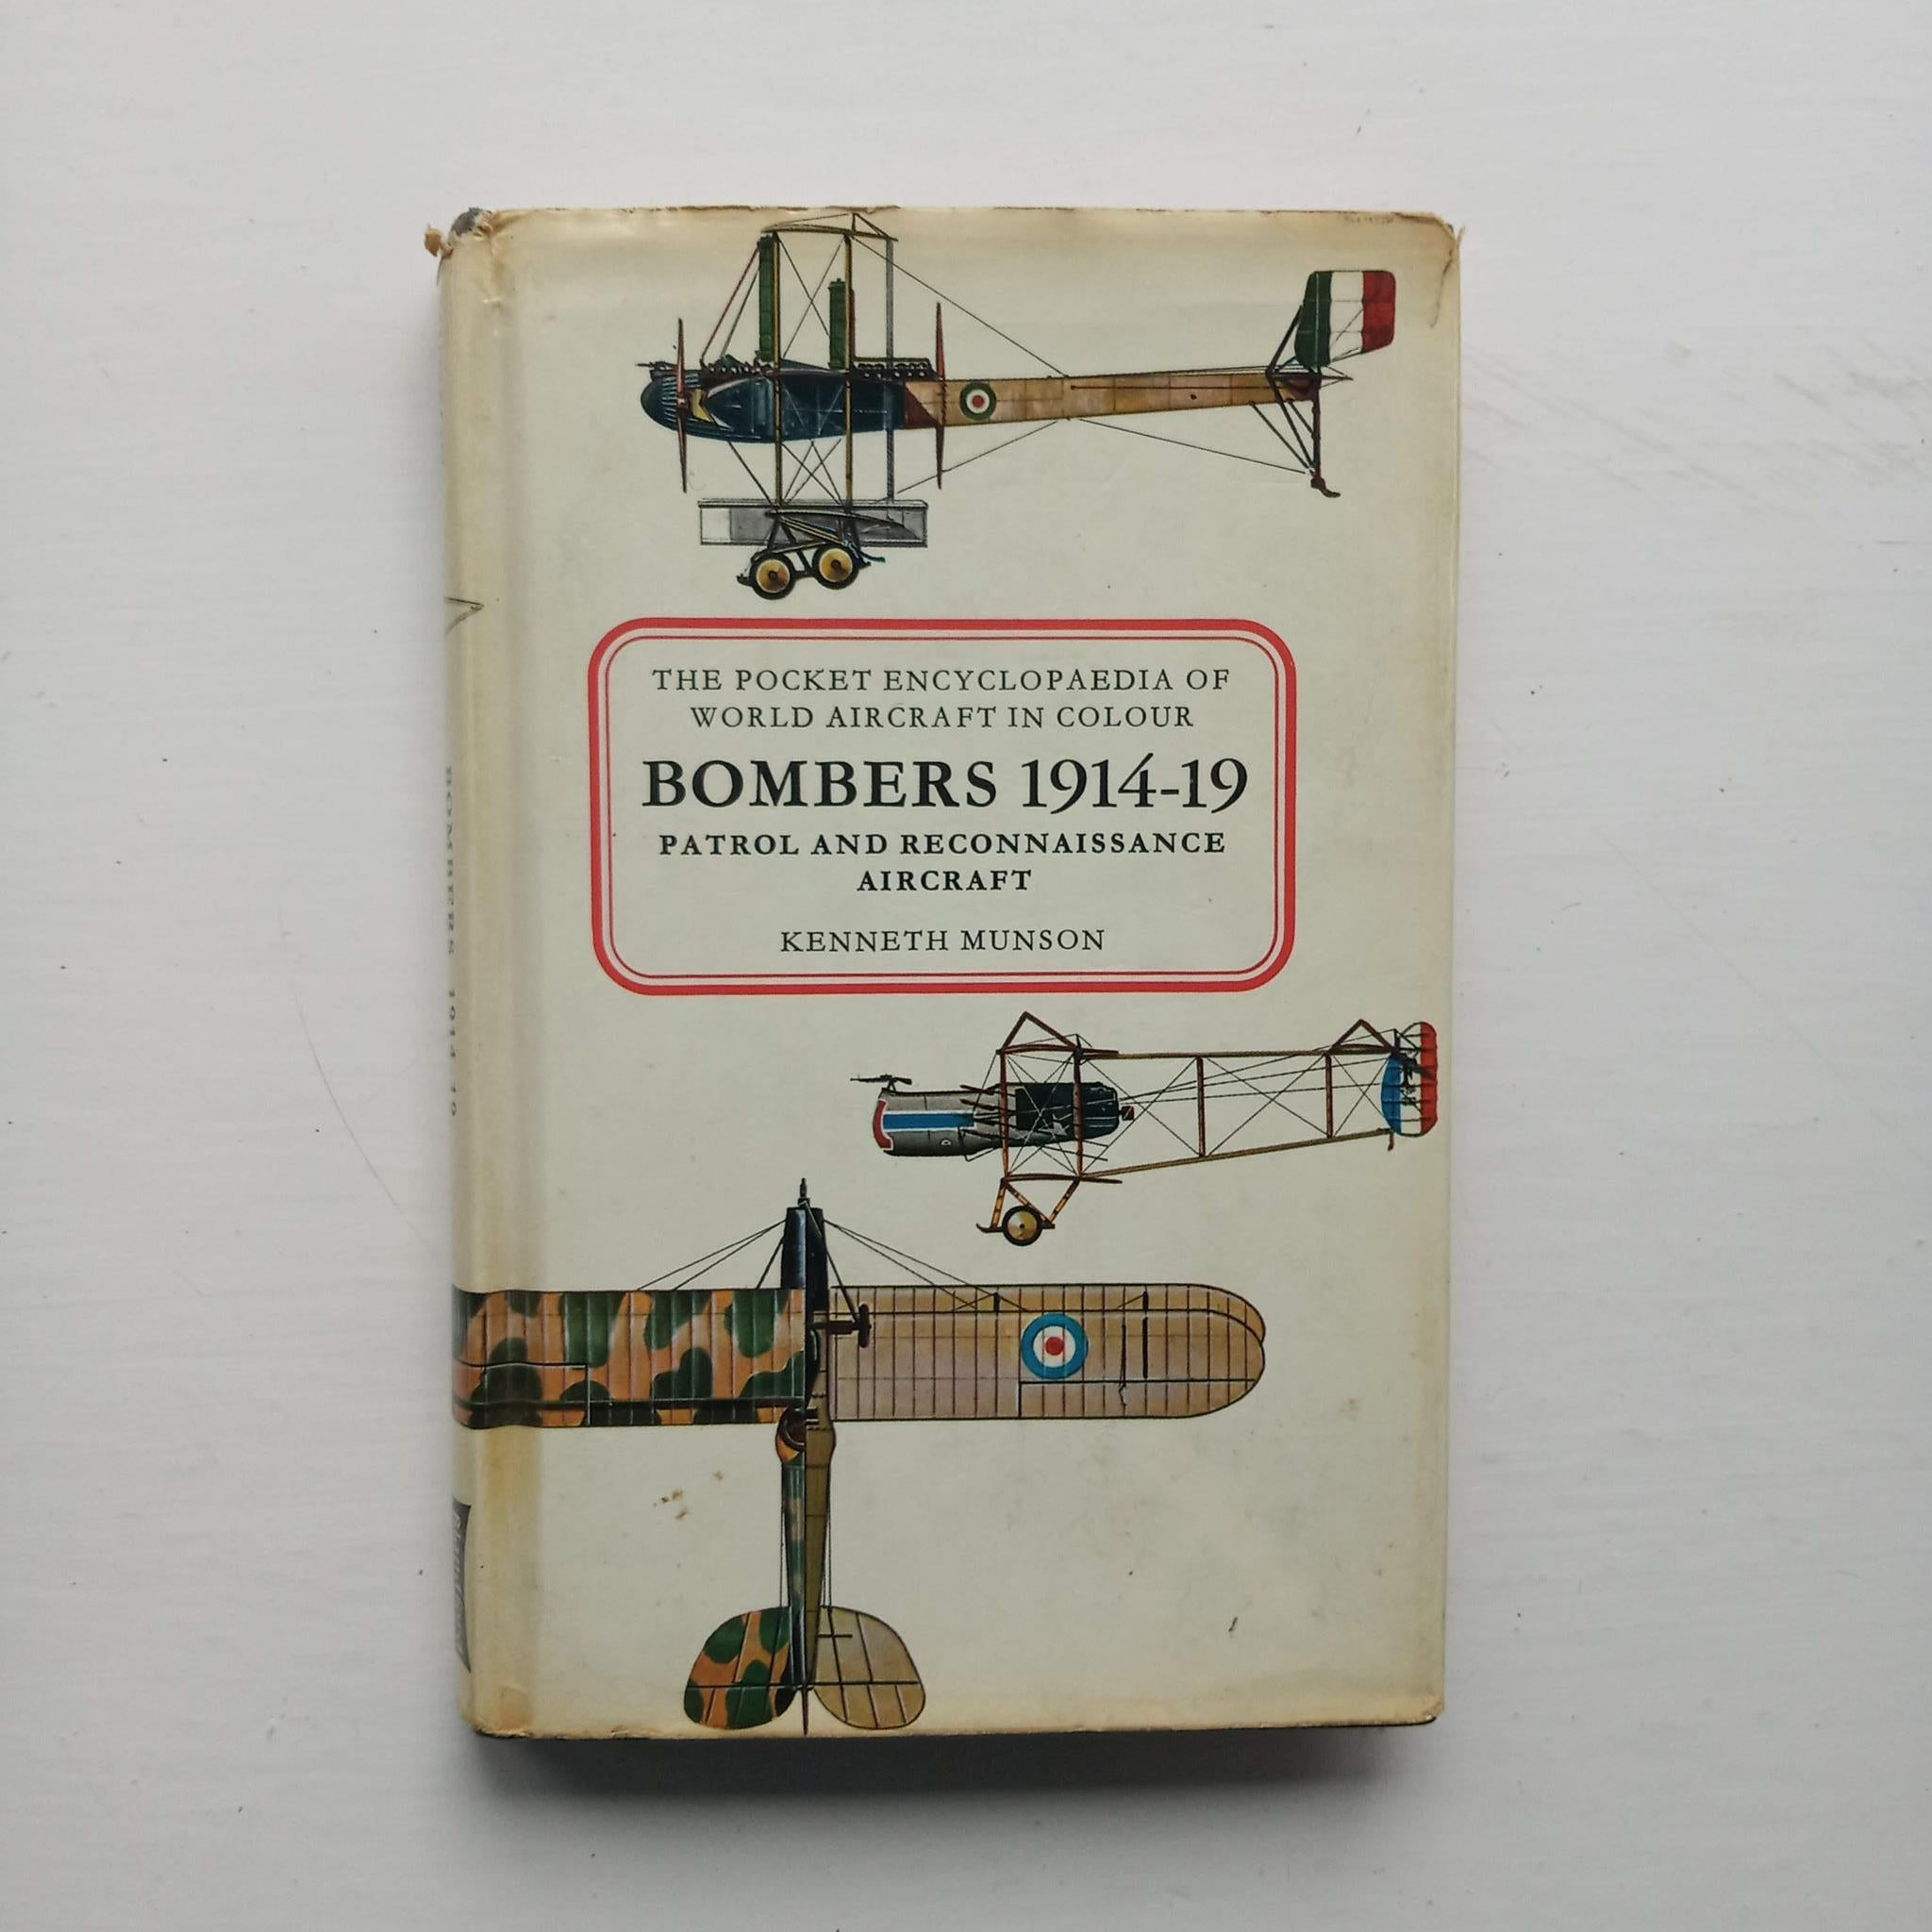 Bombers 1914-19: Patrol and Reconnaissance Aircraft by Kenneth Munson